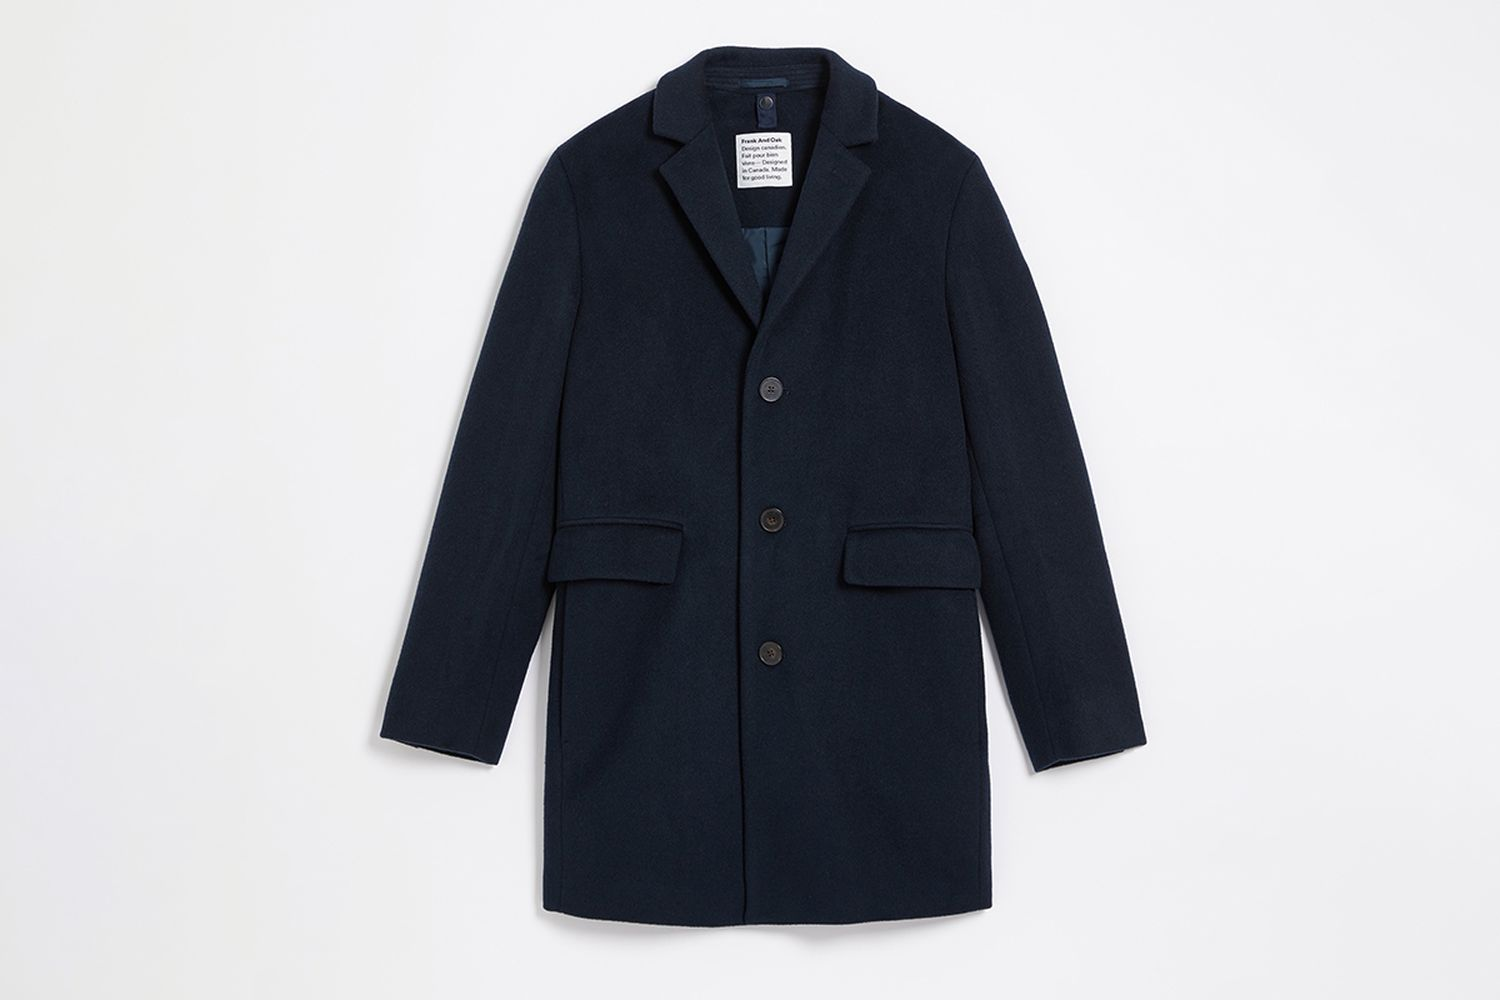 The Lawrence Recycled Wool Topcoat